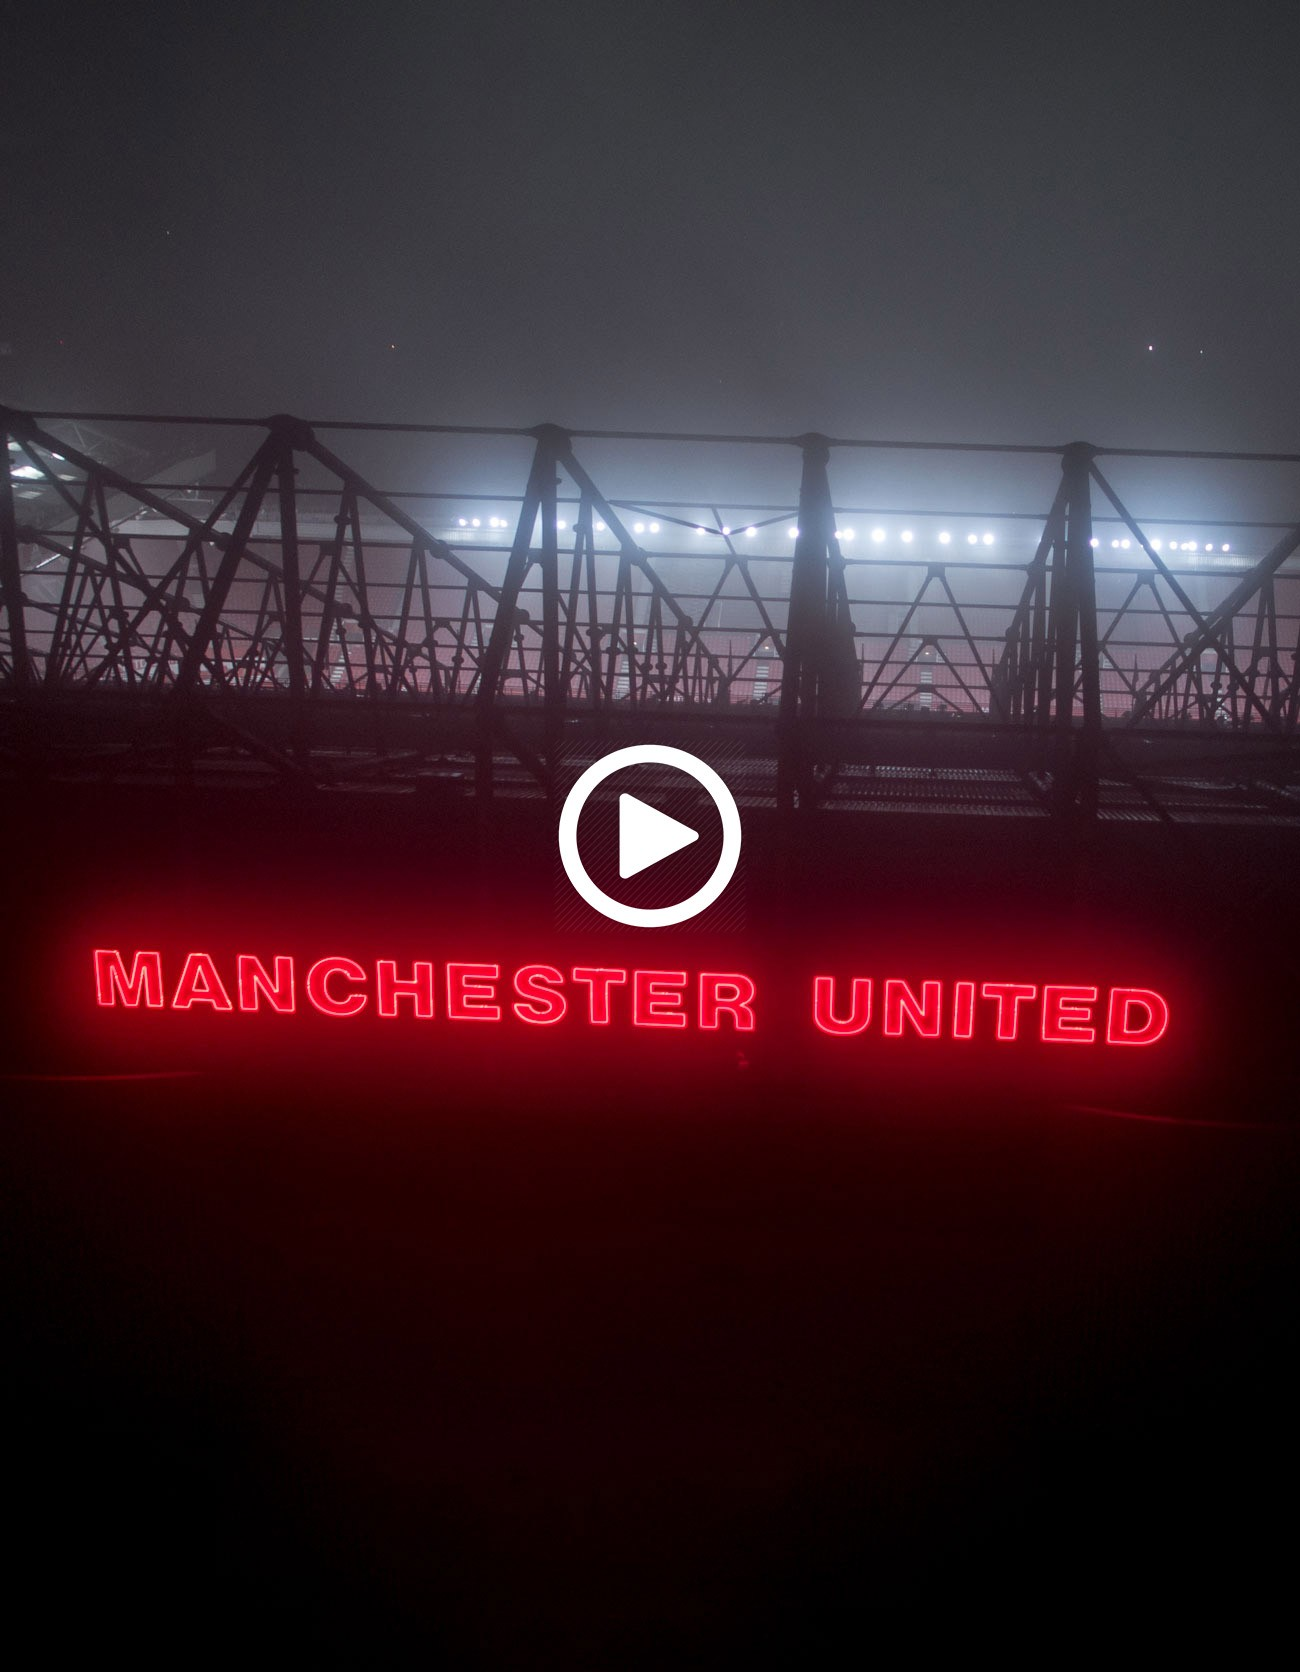 Manchester United stadium at night drone photo